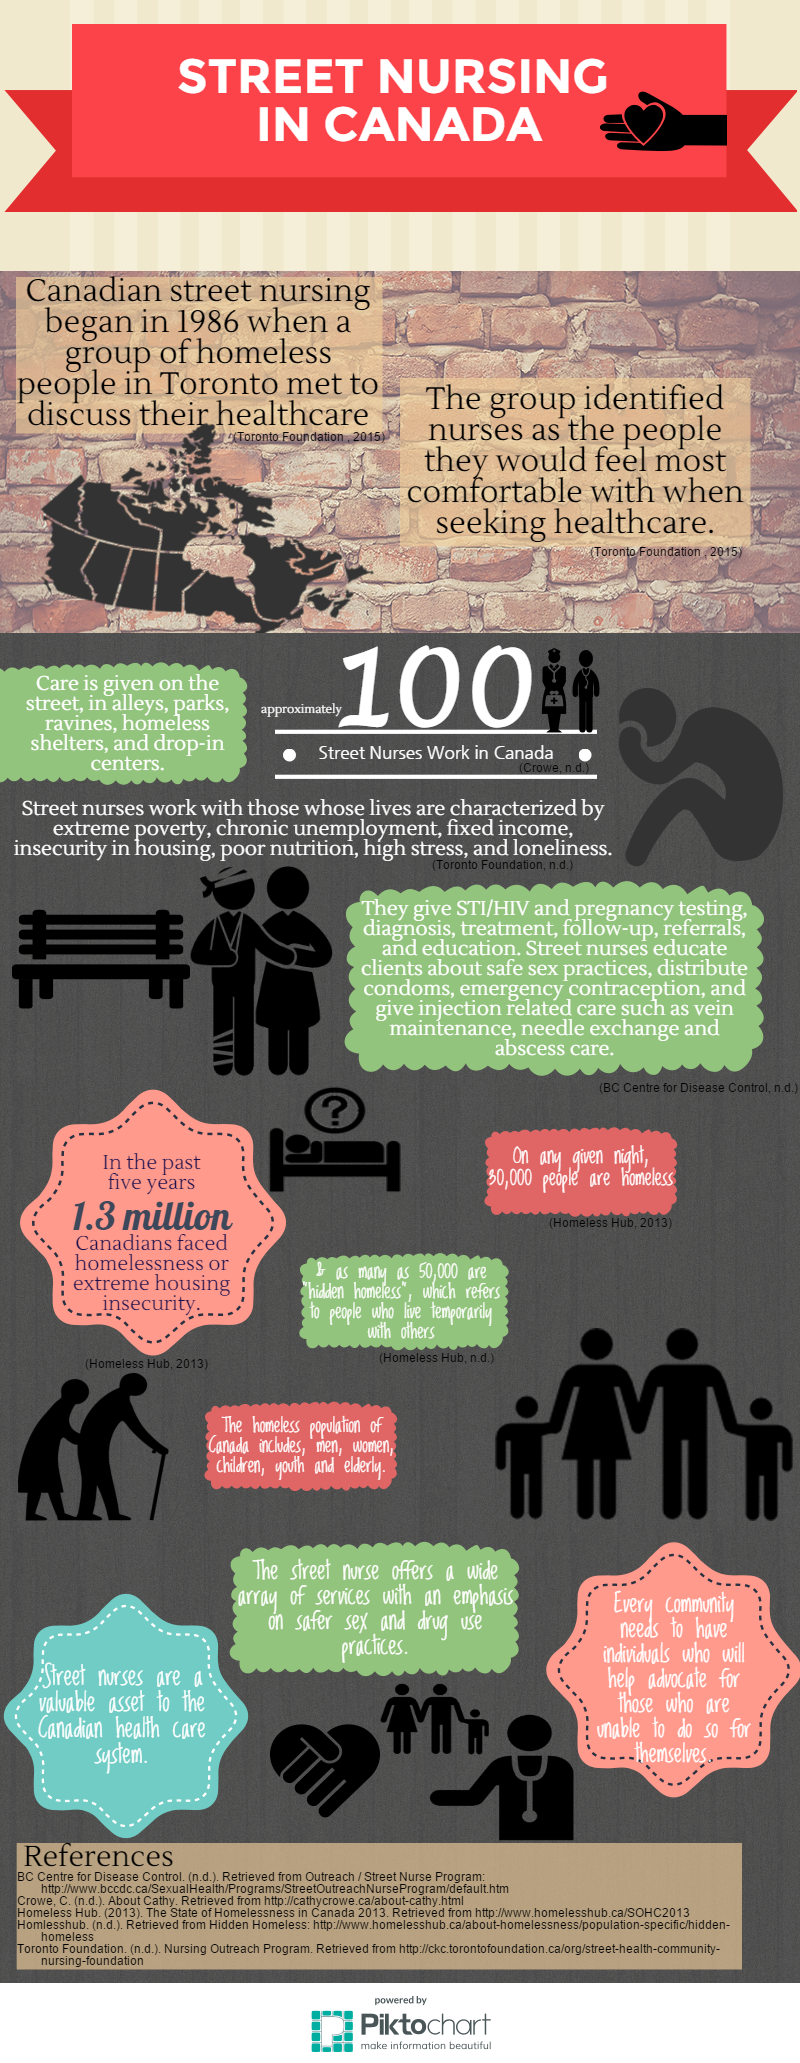 Street nursing in Canada infographic